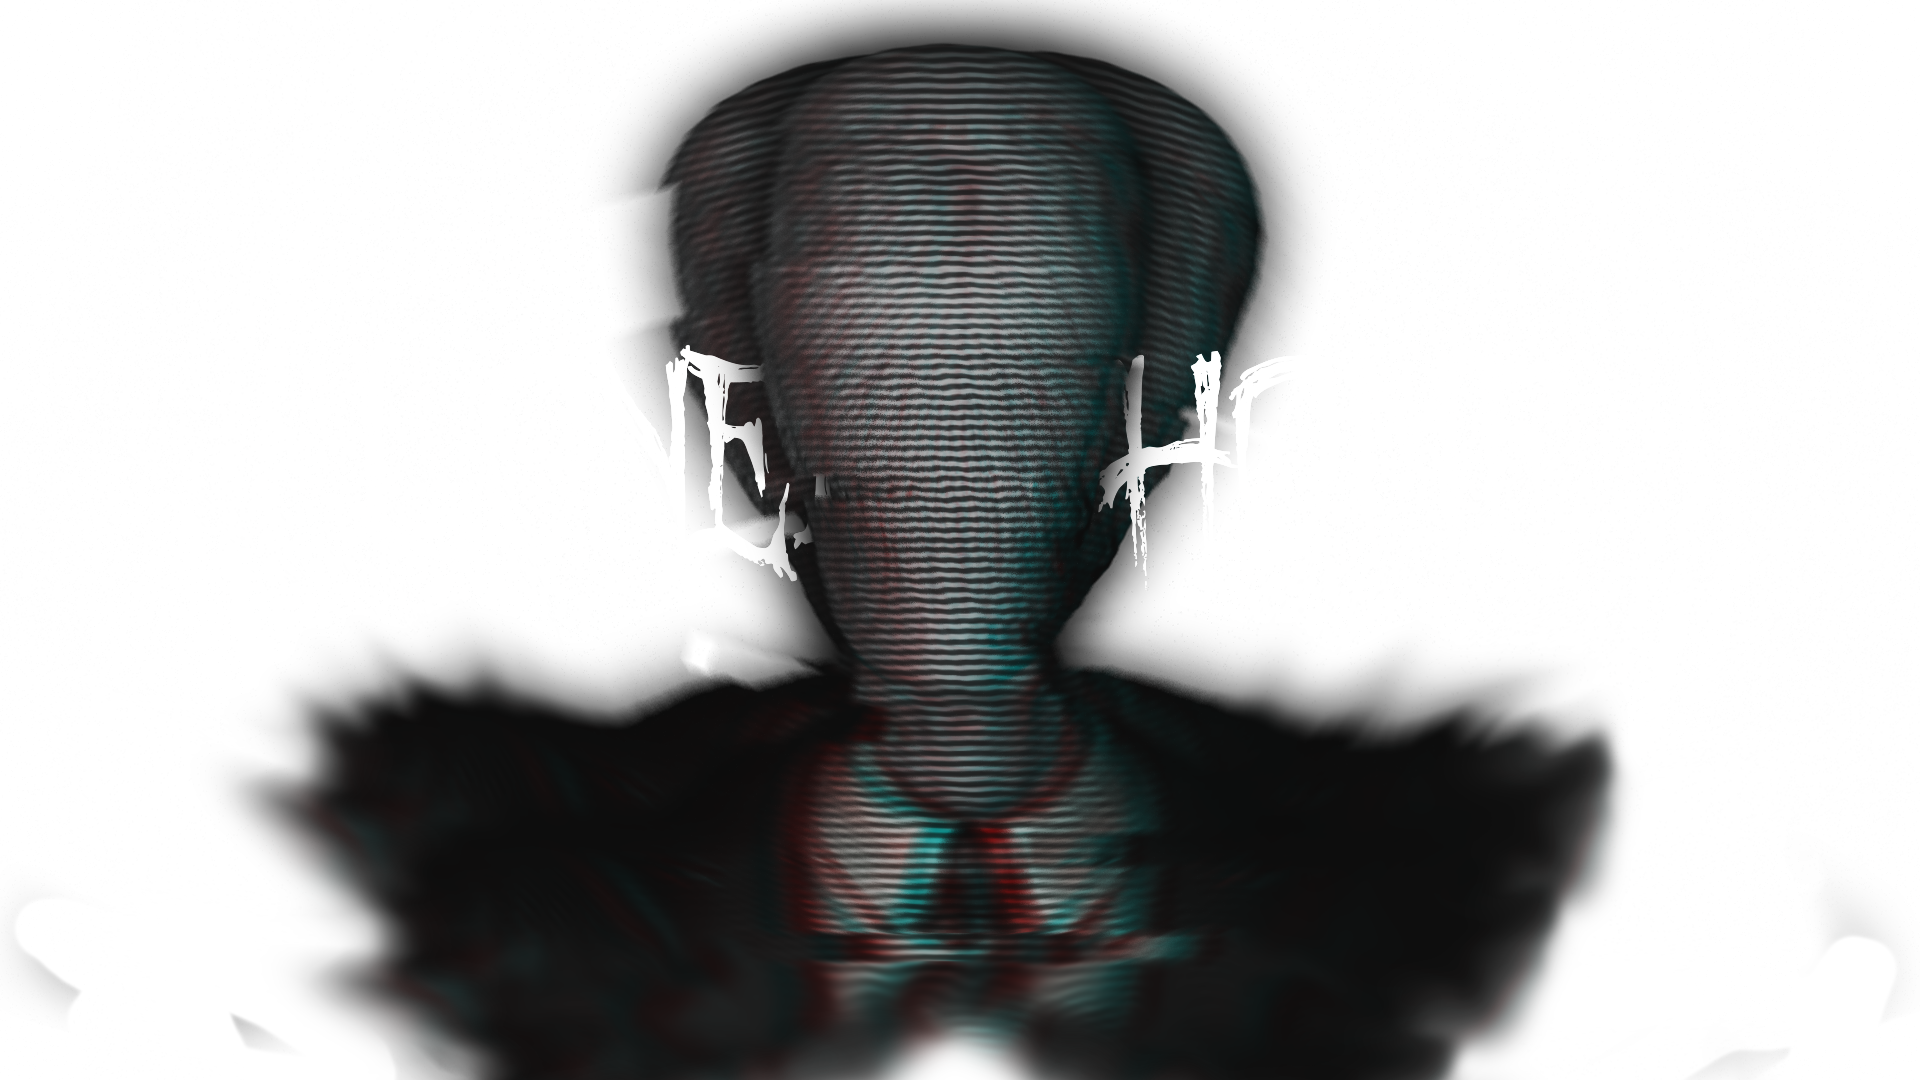 Slender - Lonely Home